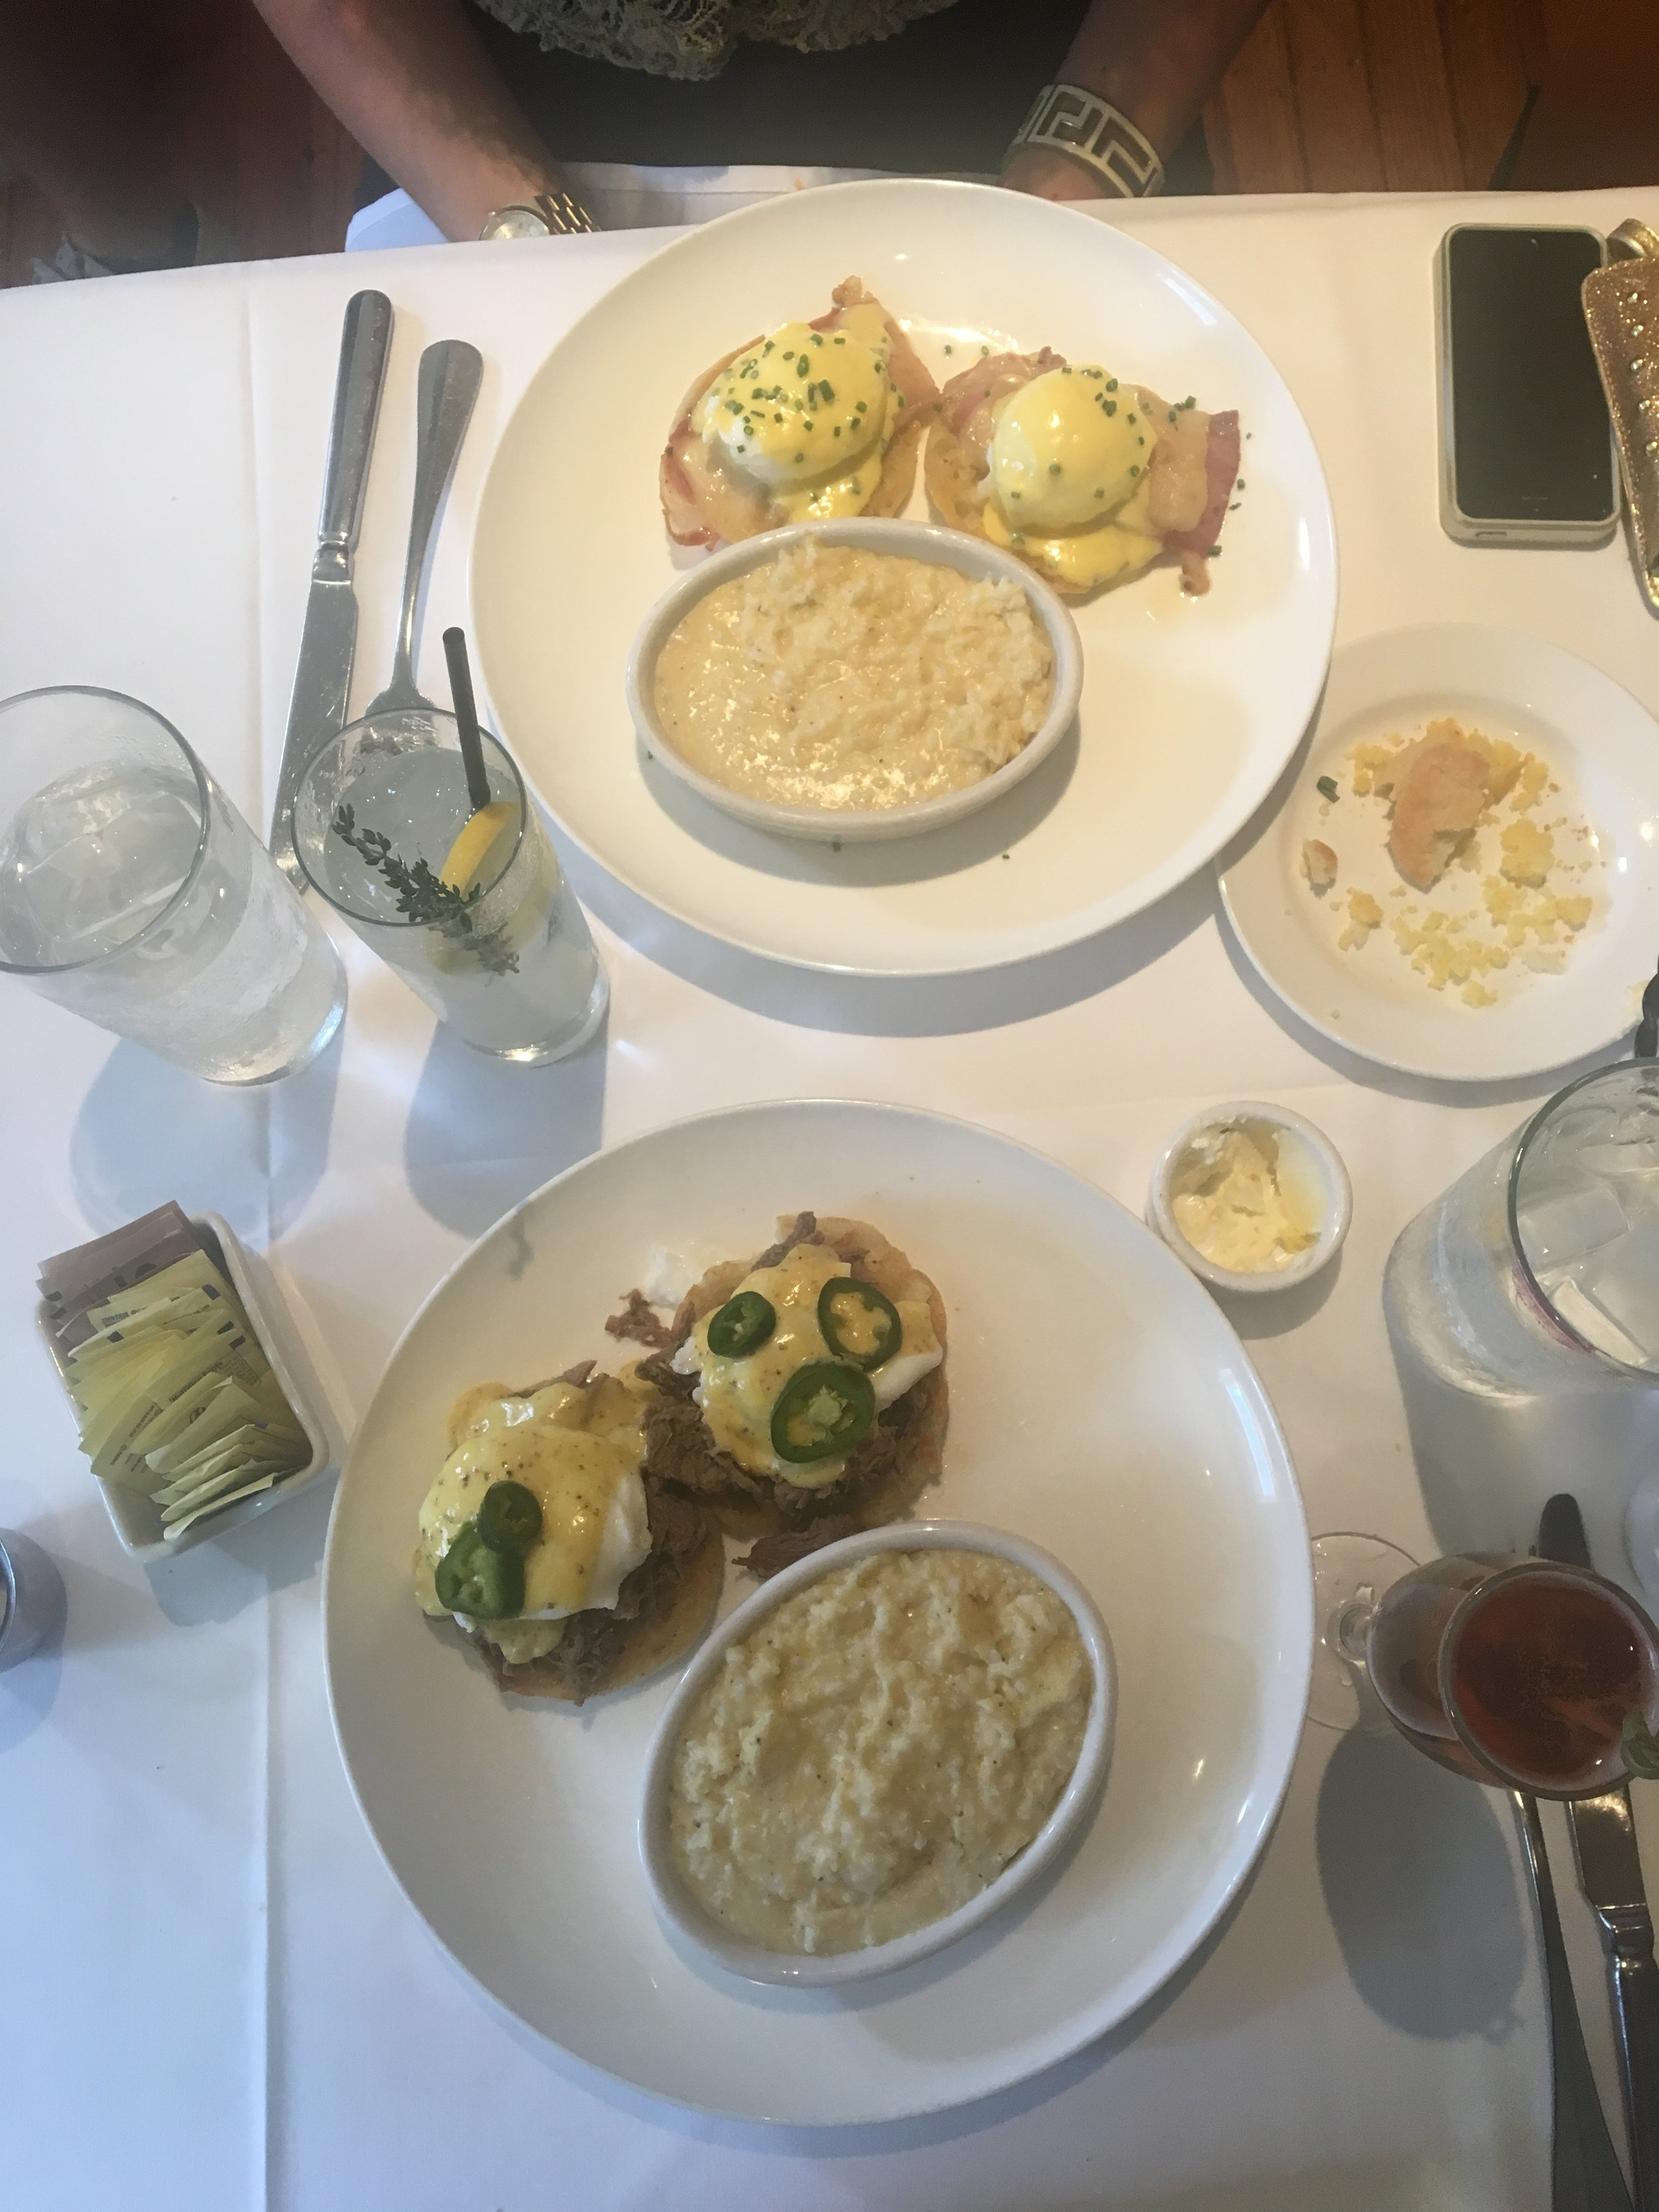 Brisket eggs benedict and some cheese grits ya'll!